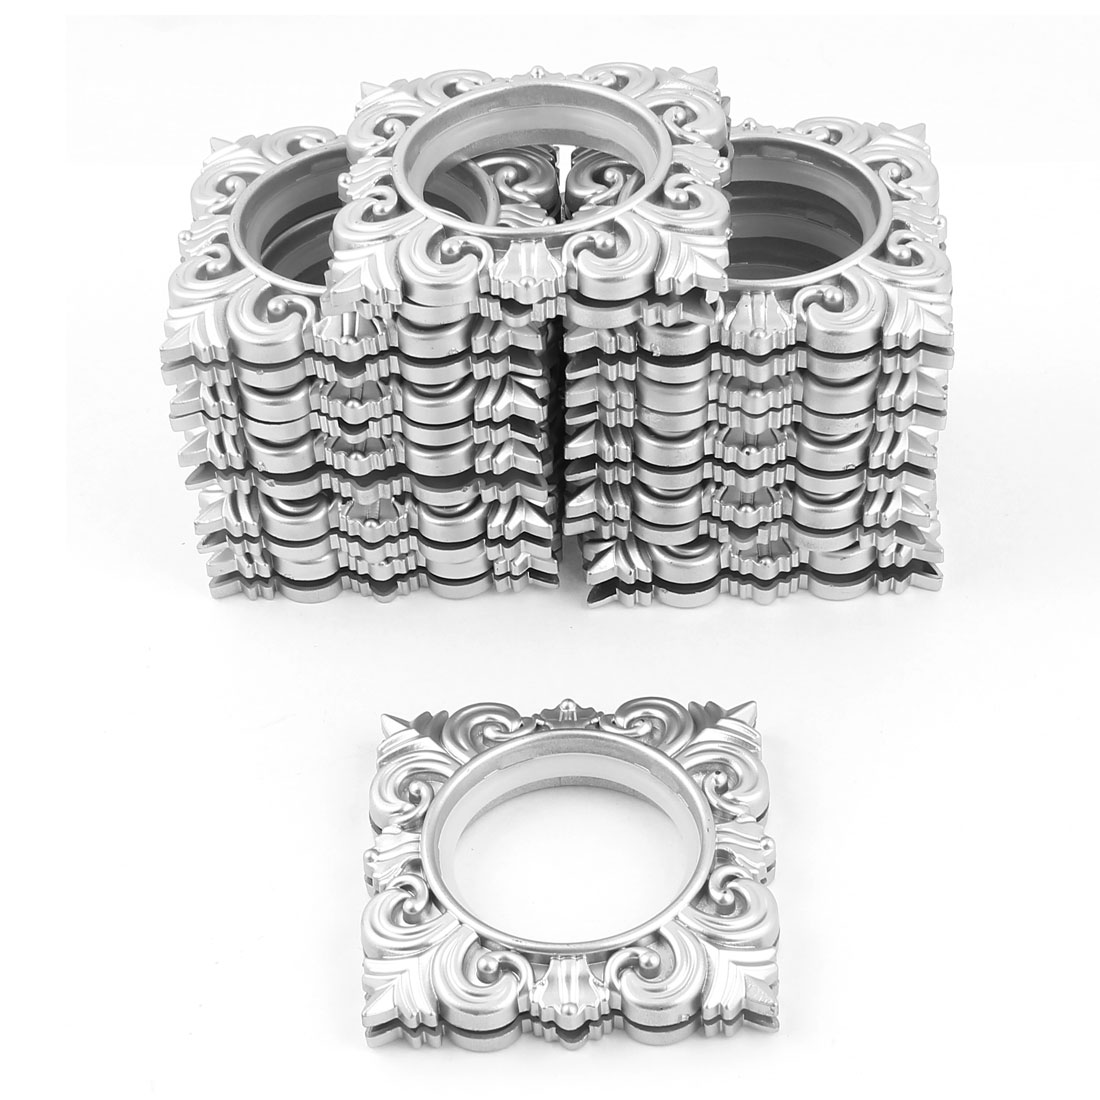 12 Pcs Silver Tone Square Rings 45mm Inner Dia for Eyelet Curtain